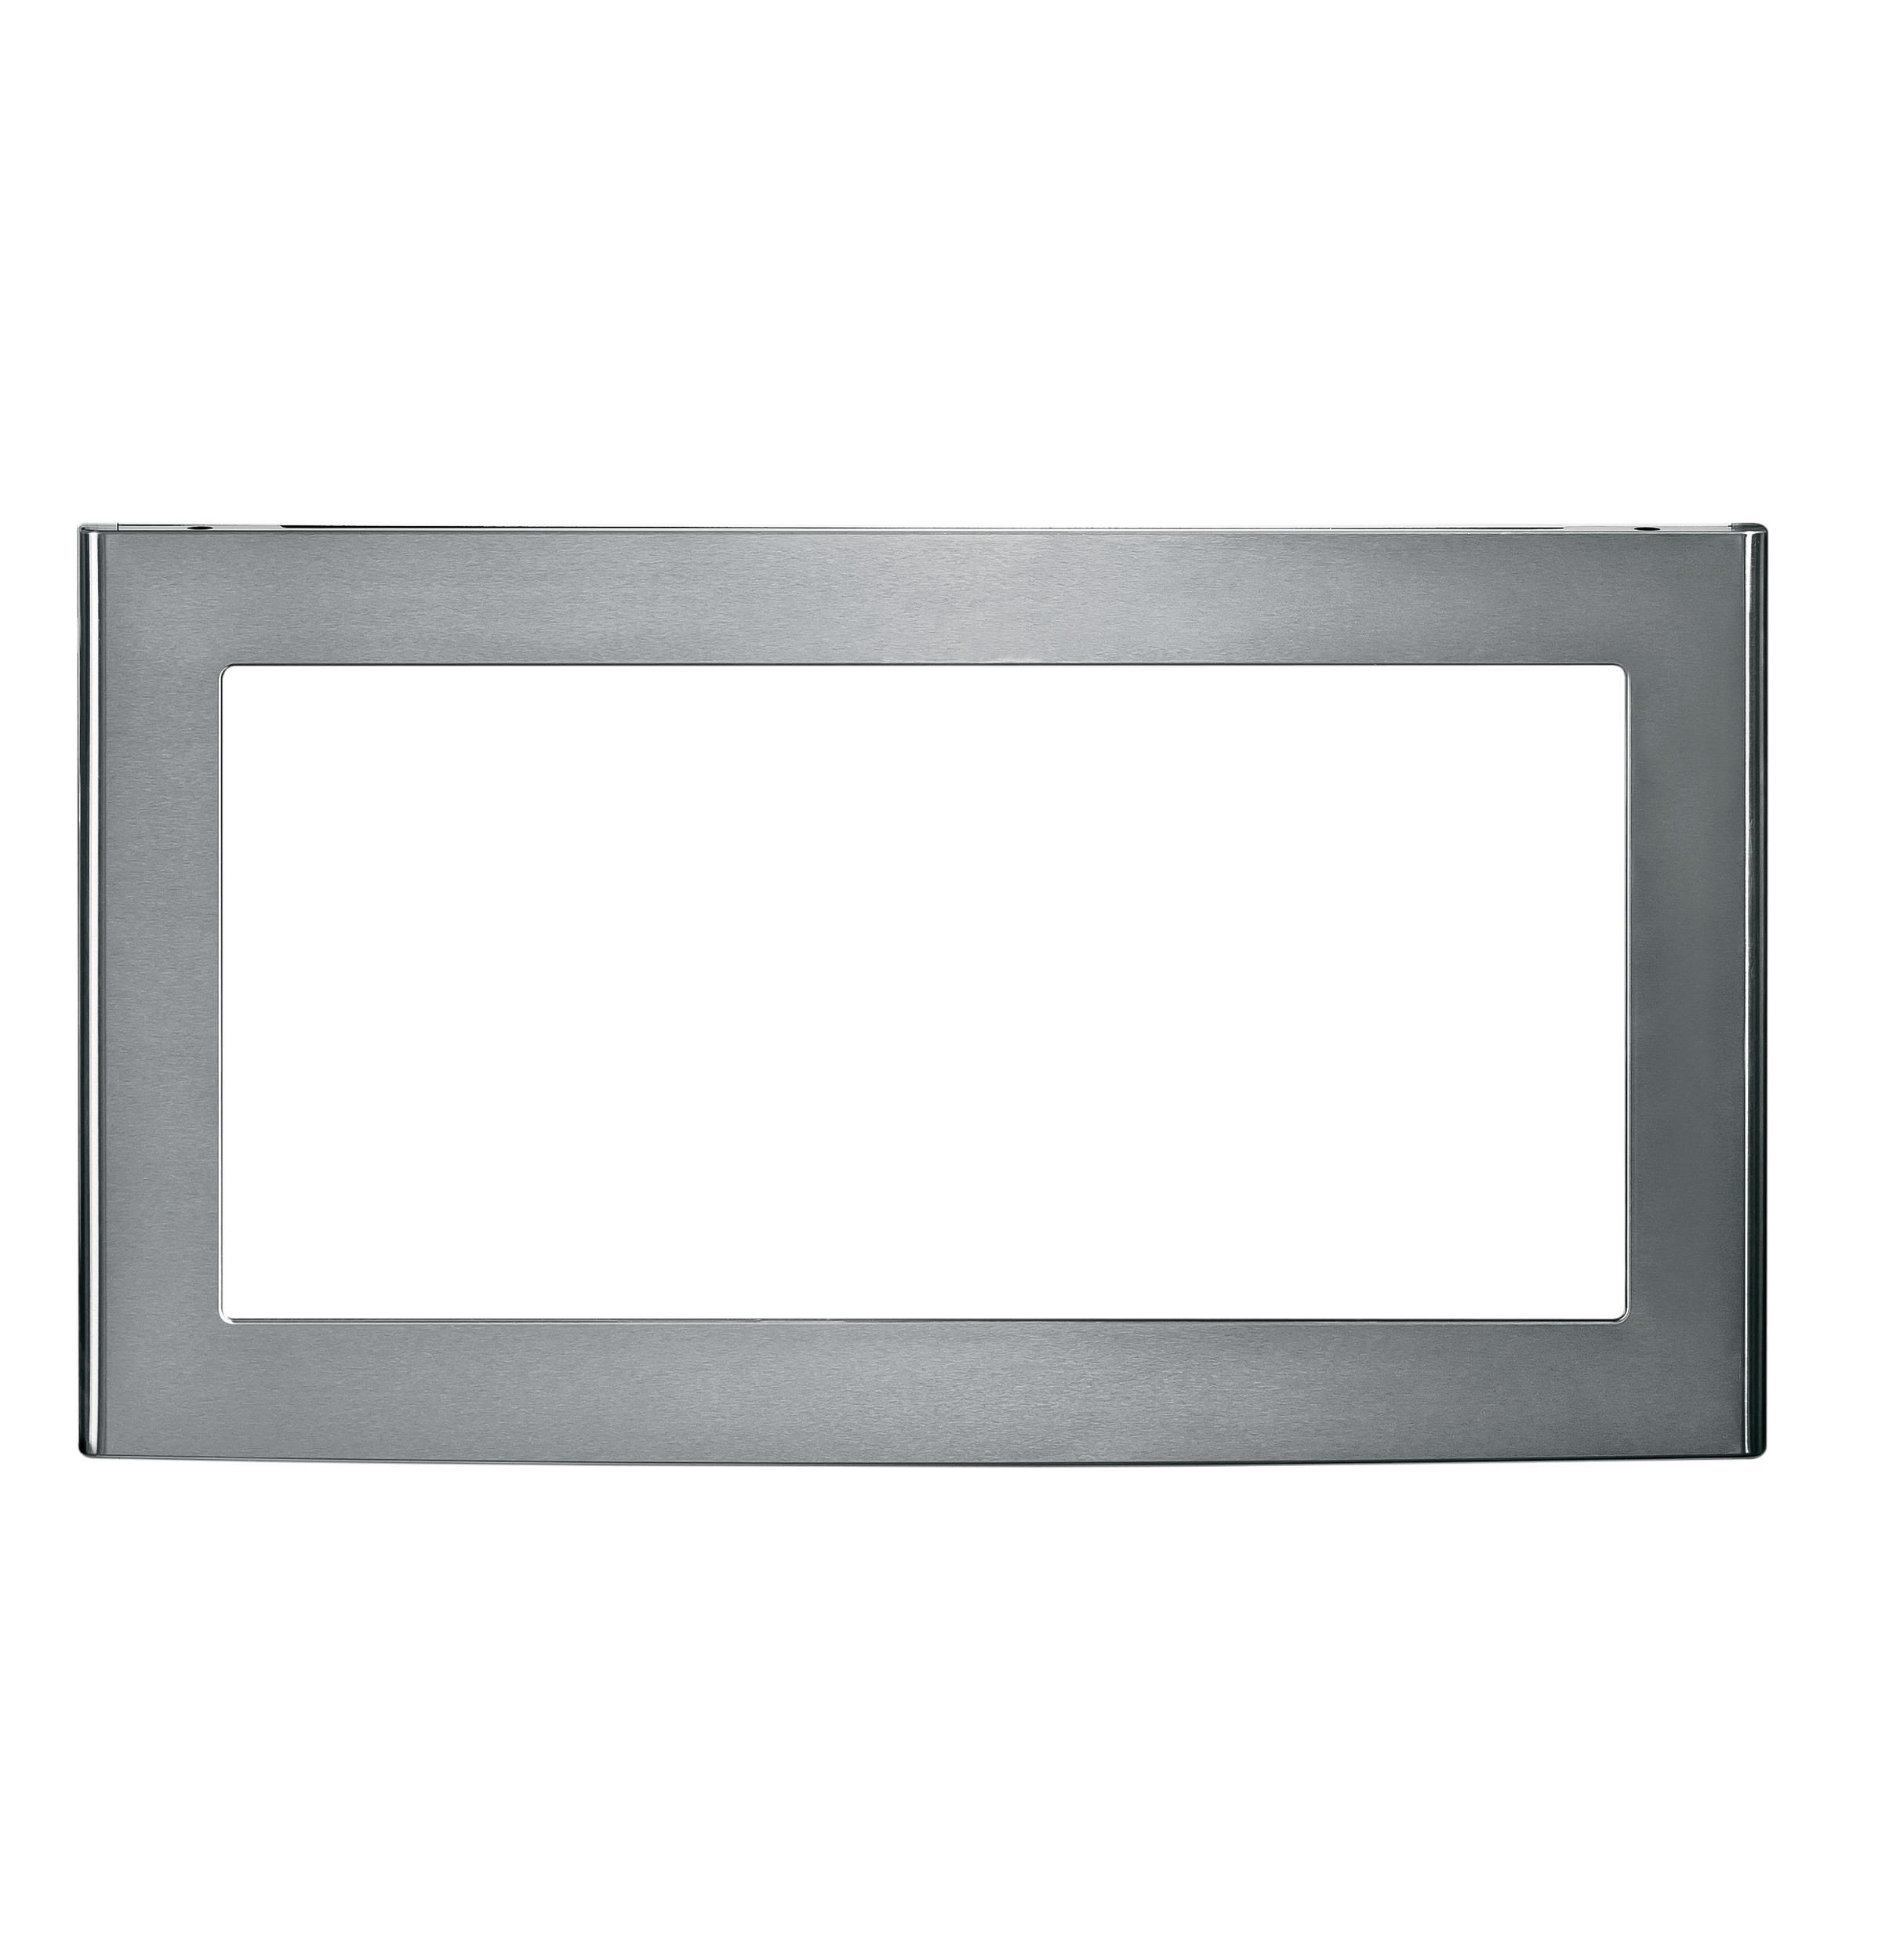 "Optional 30"" Built-In Trim Kit